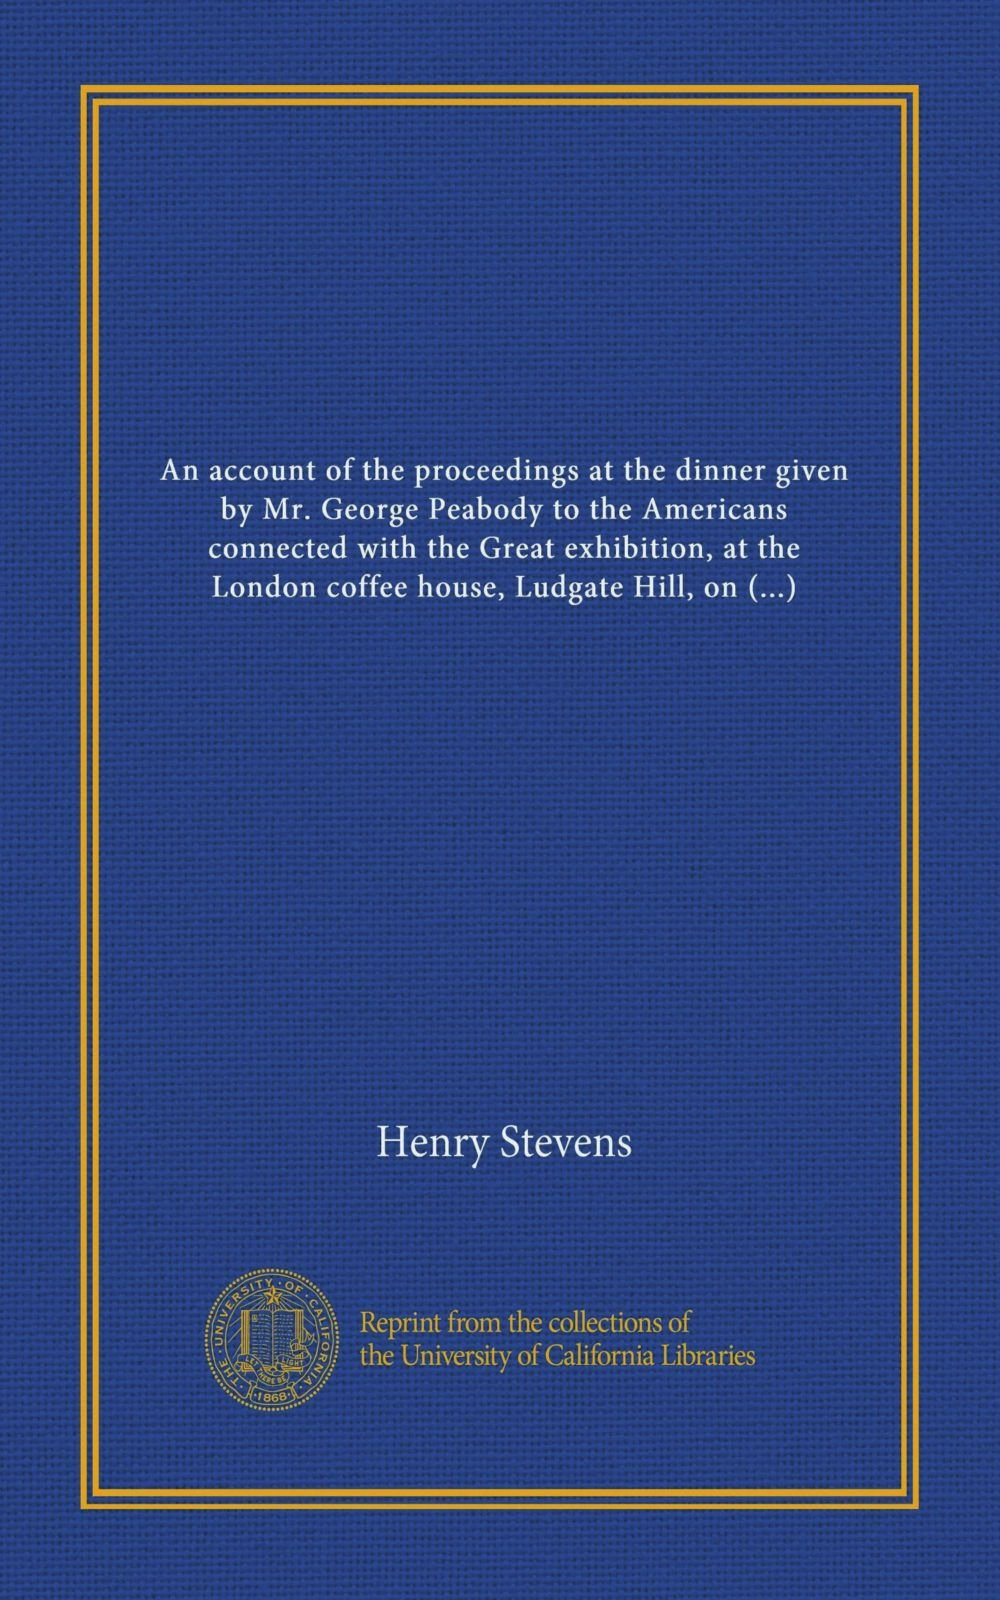 Download An account of the proceedings at the dinner given by Mr. George Peabody to the Americans connected with the Great exhibition, at the London coffee house, Ludgate Hill, on the 27th October, 1851 PDF